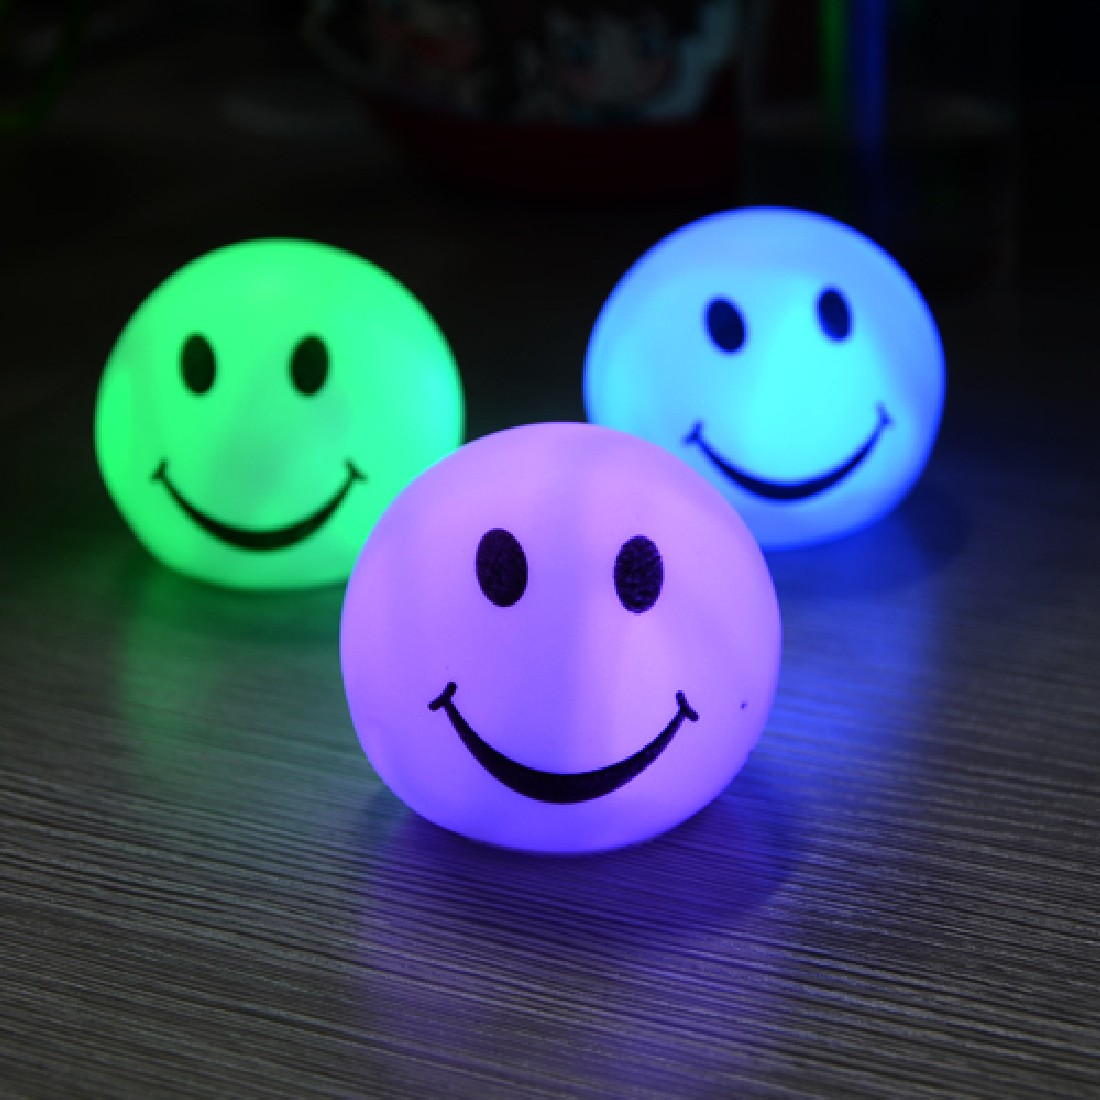 New Colorful Changing LED Smiling Face Shaped Night Light Lamp For Party Bedroom Decor Wedding Christmas Gifts